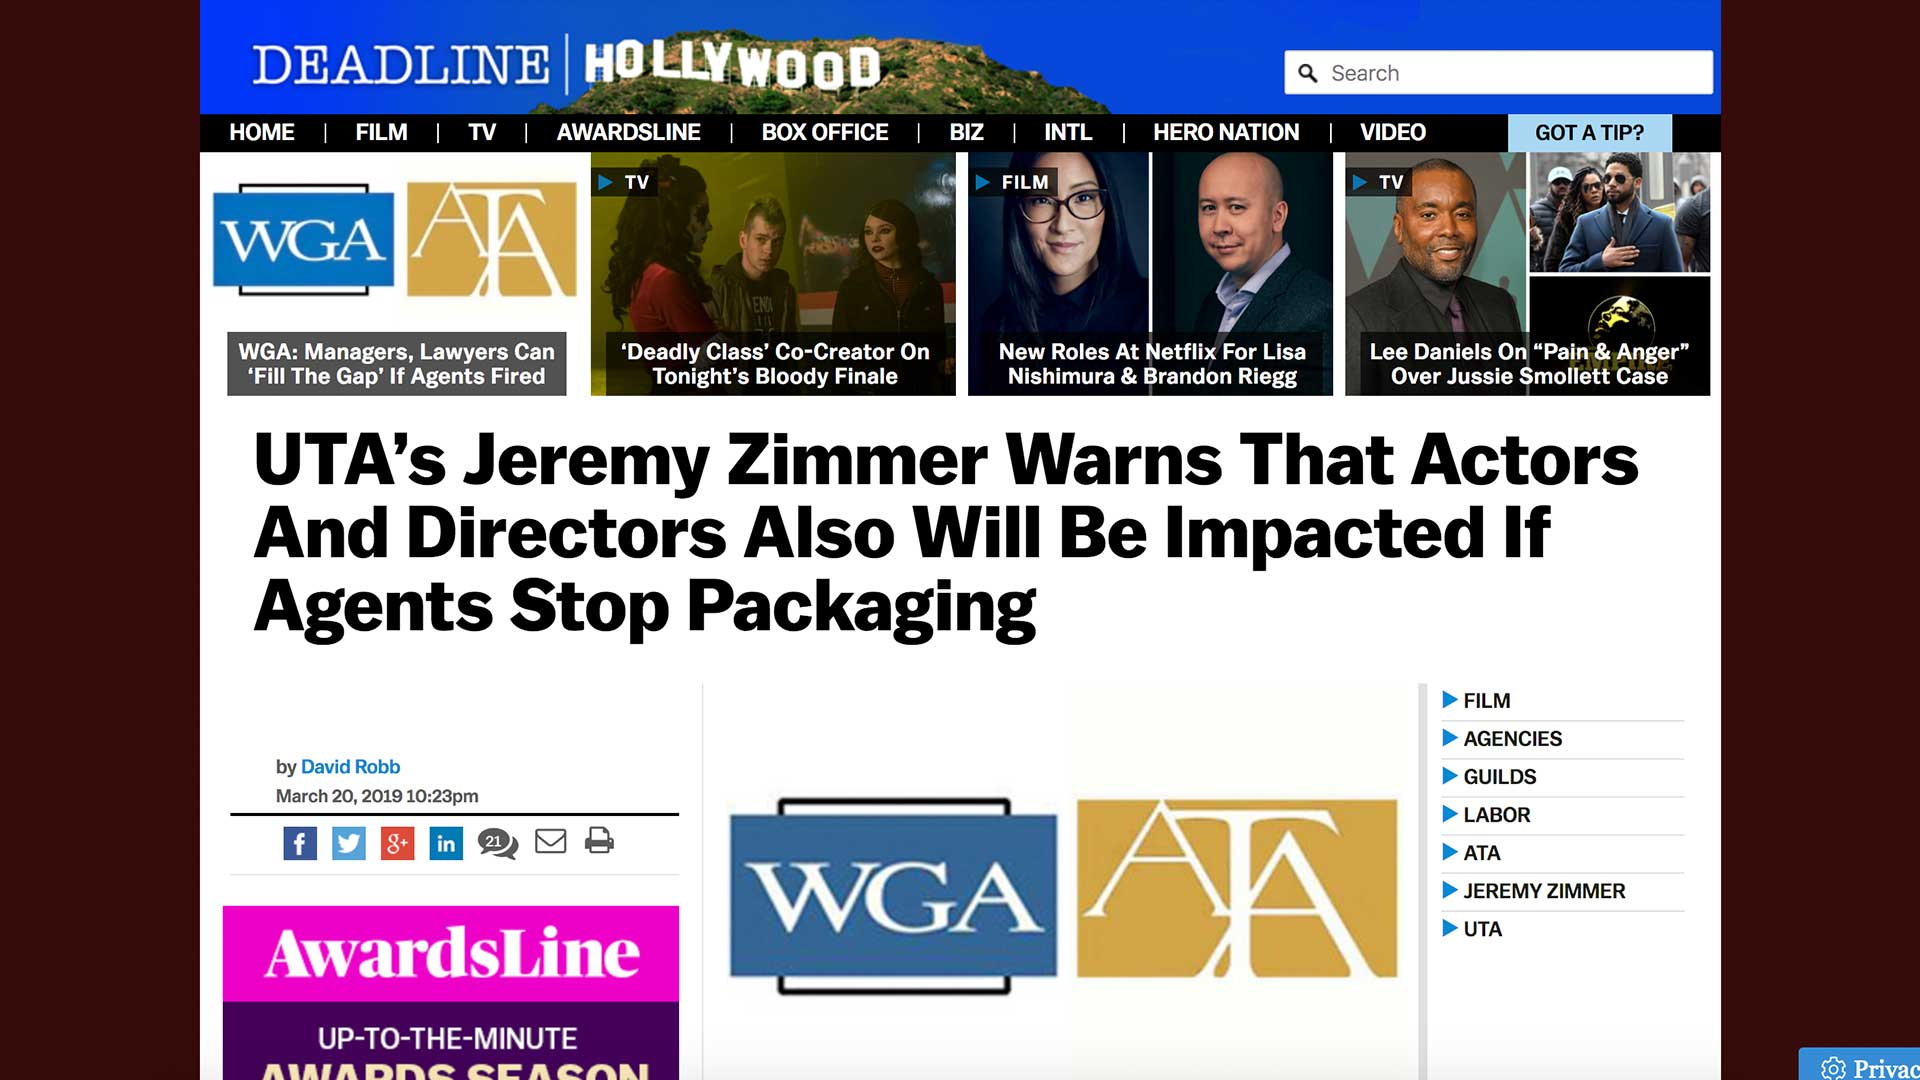 Fairness Rocks News UTA's Jeremy Zimmer Warns That Actors And Directors Also Will Be Impacted If Agents Stop Packaging